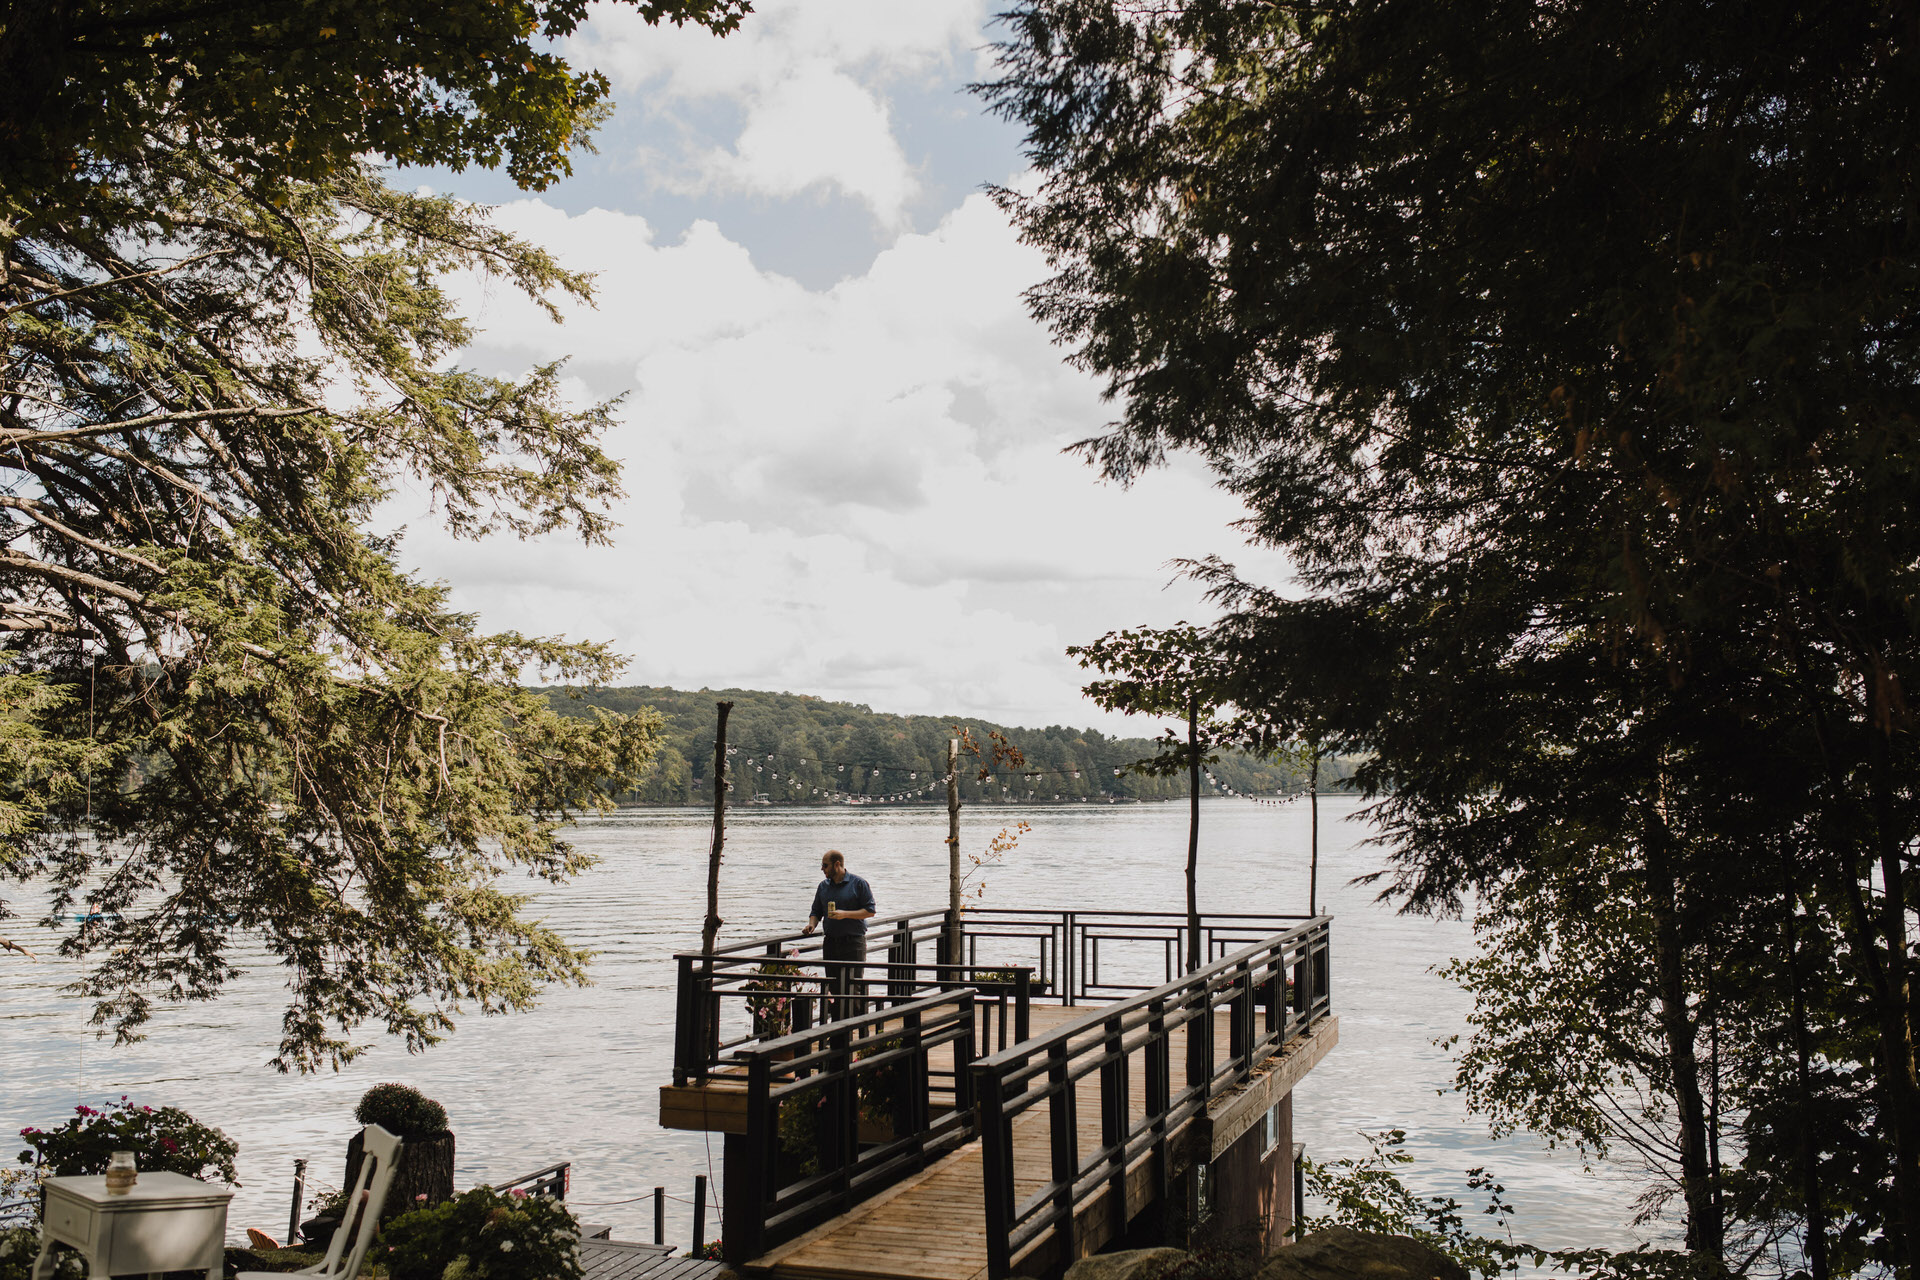 Muskoka Wedding - prepping the dock